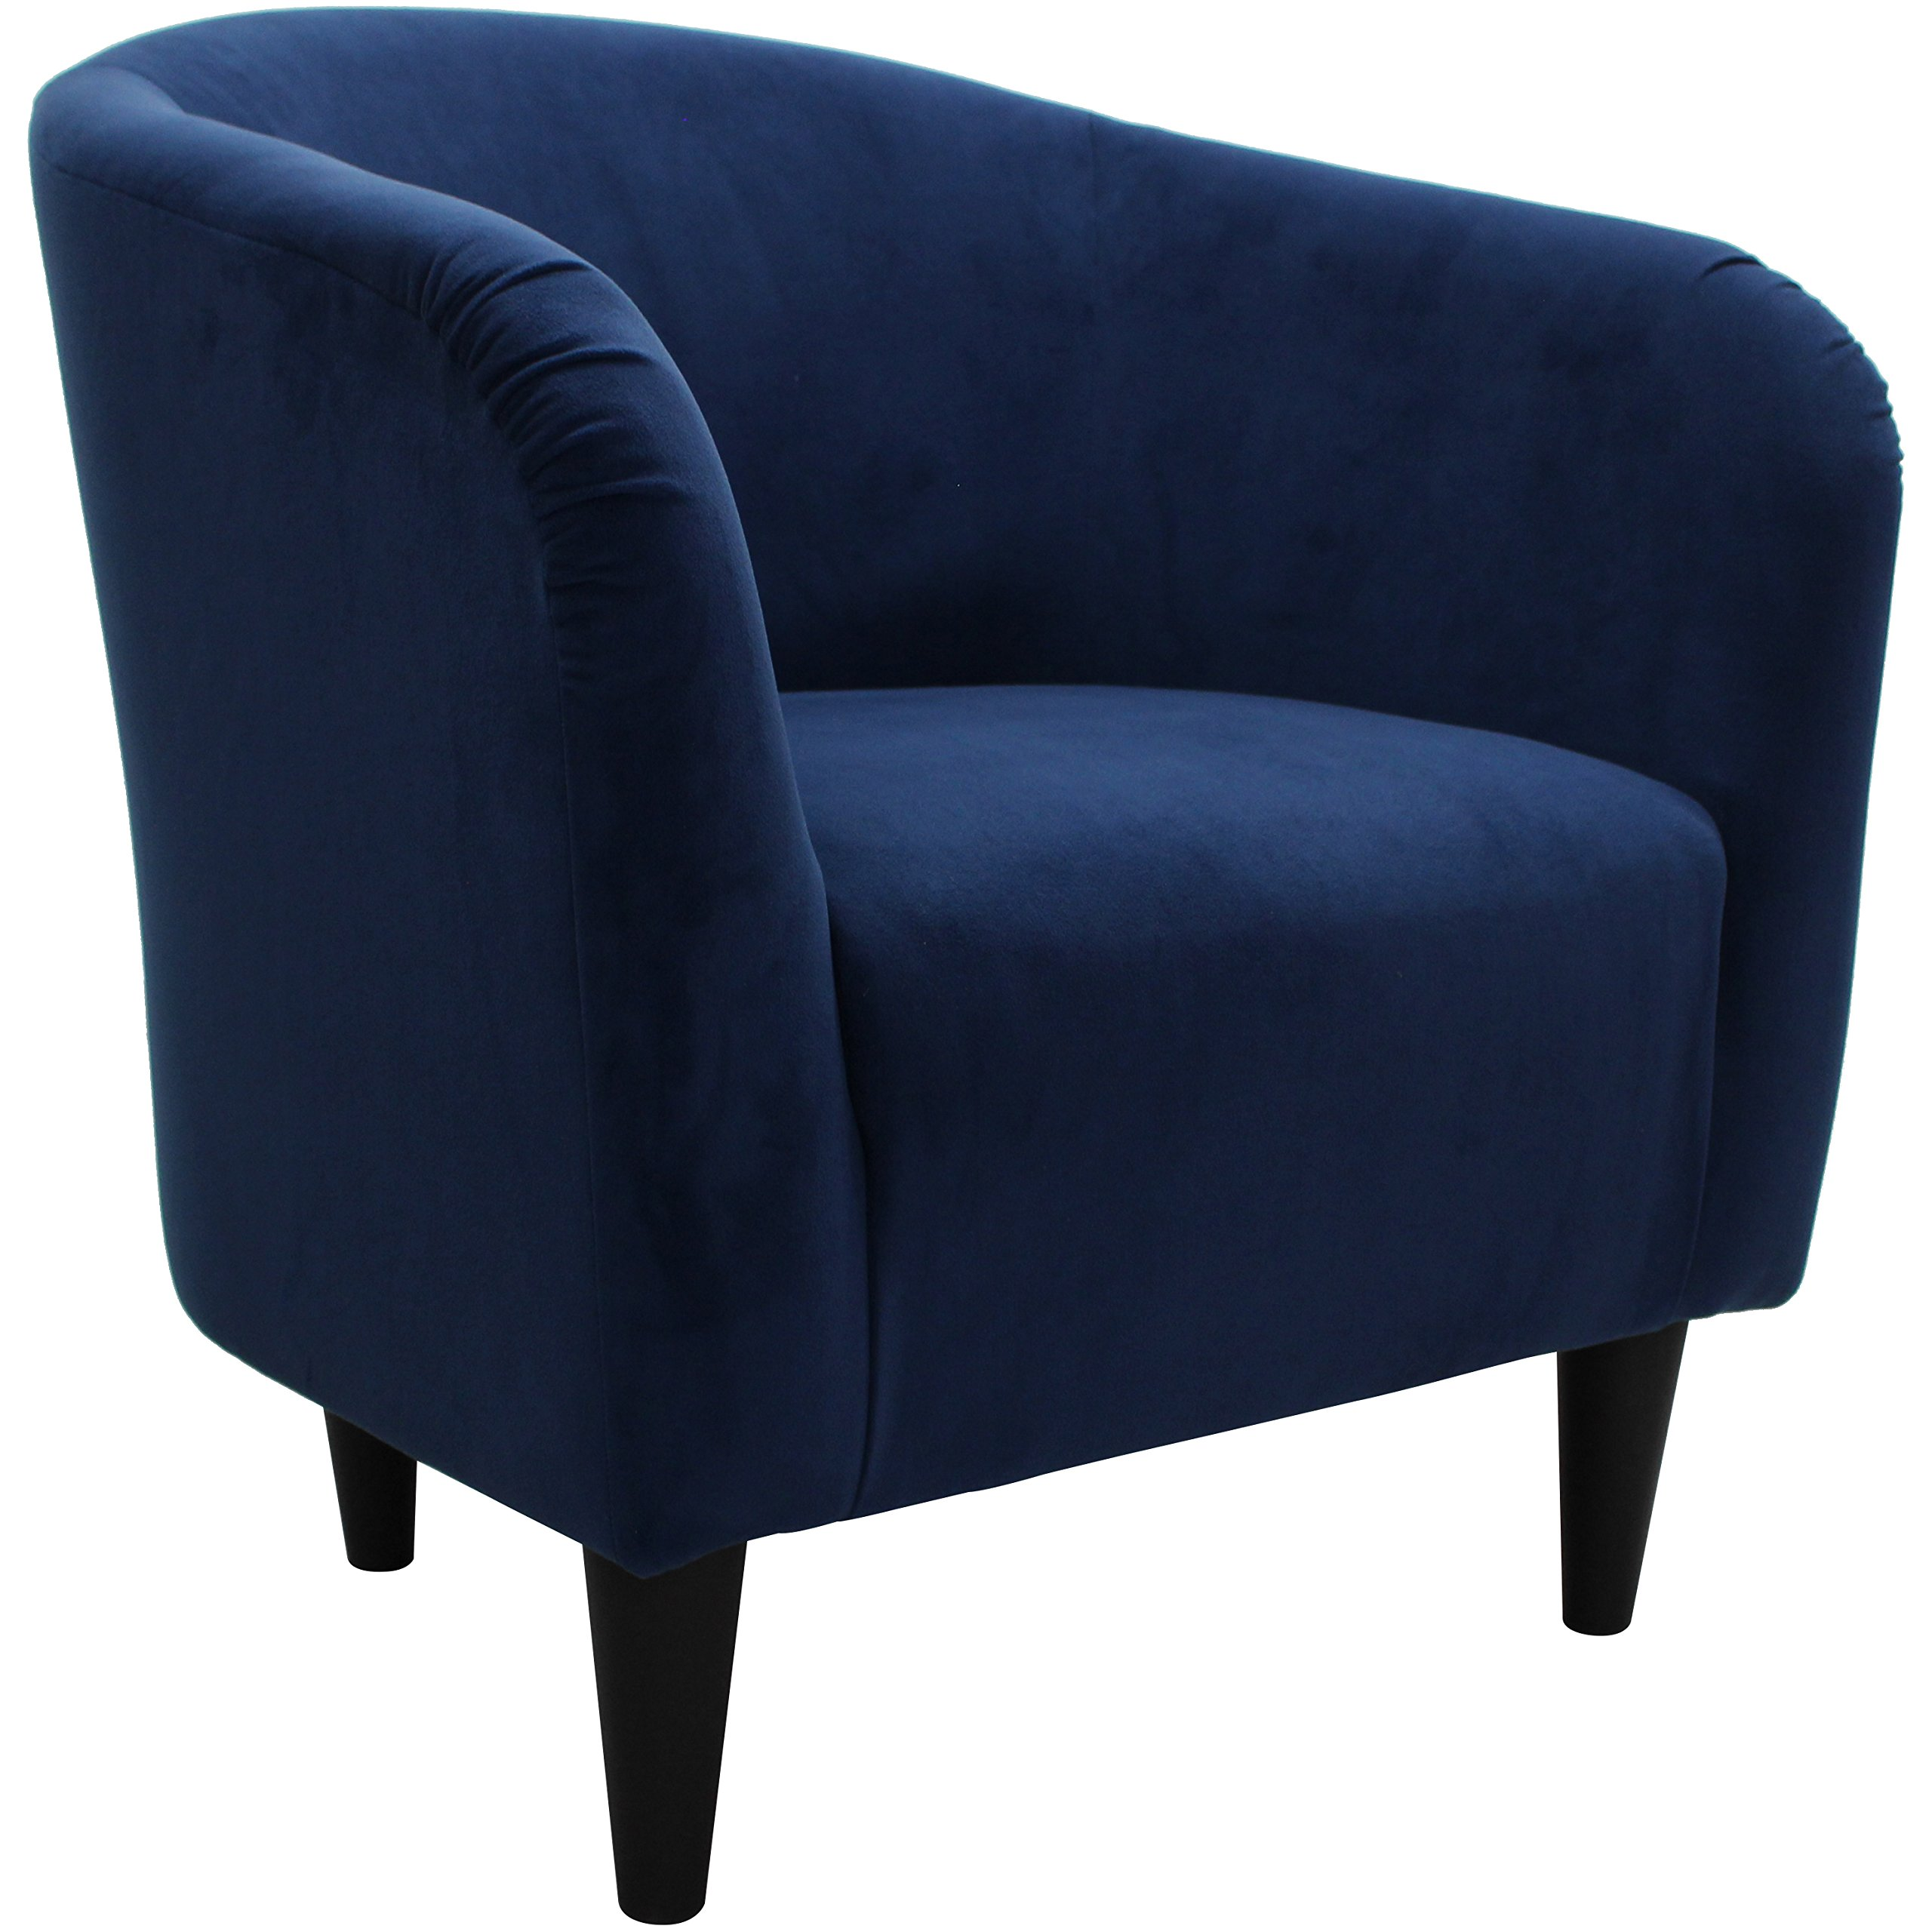 Mainstays Microfiber Tub Accent Chair (Navy Blue) by Mainstay (Image #2)